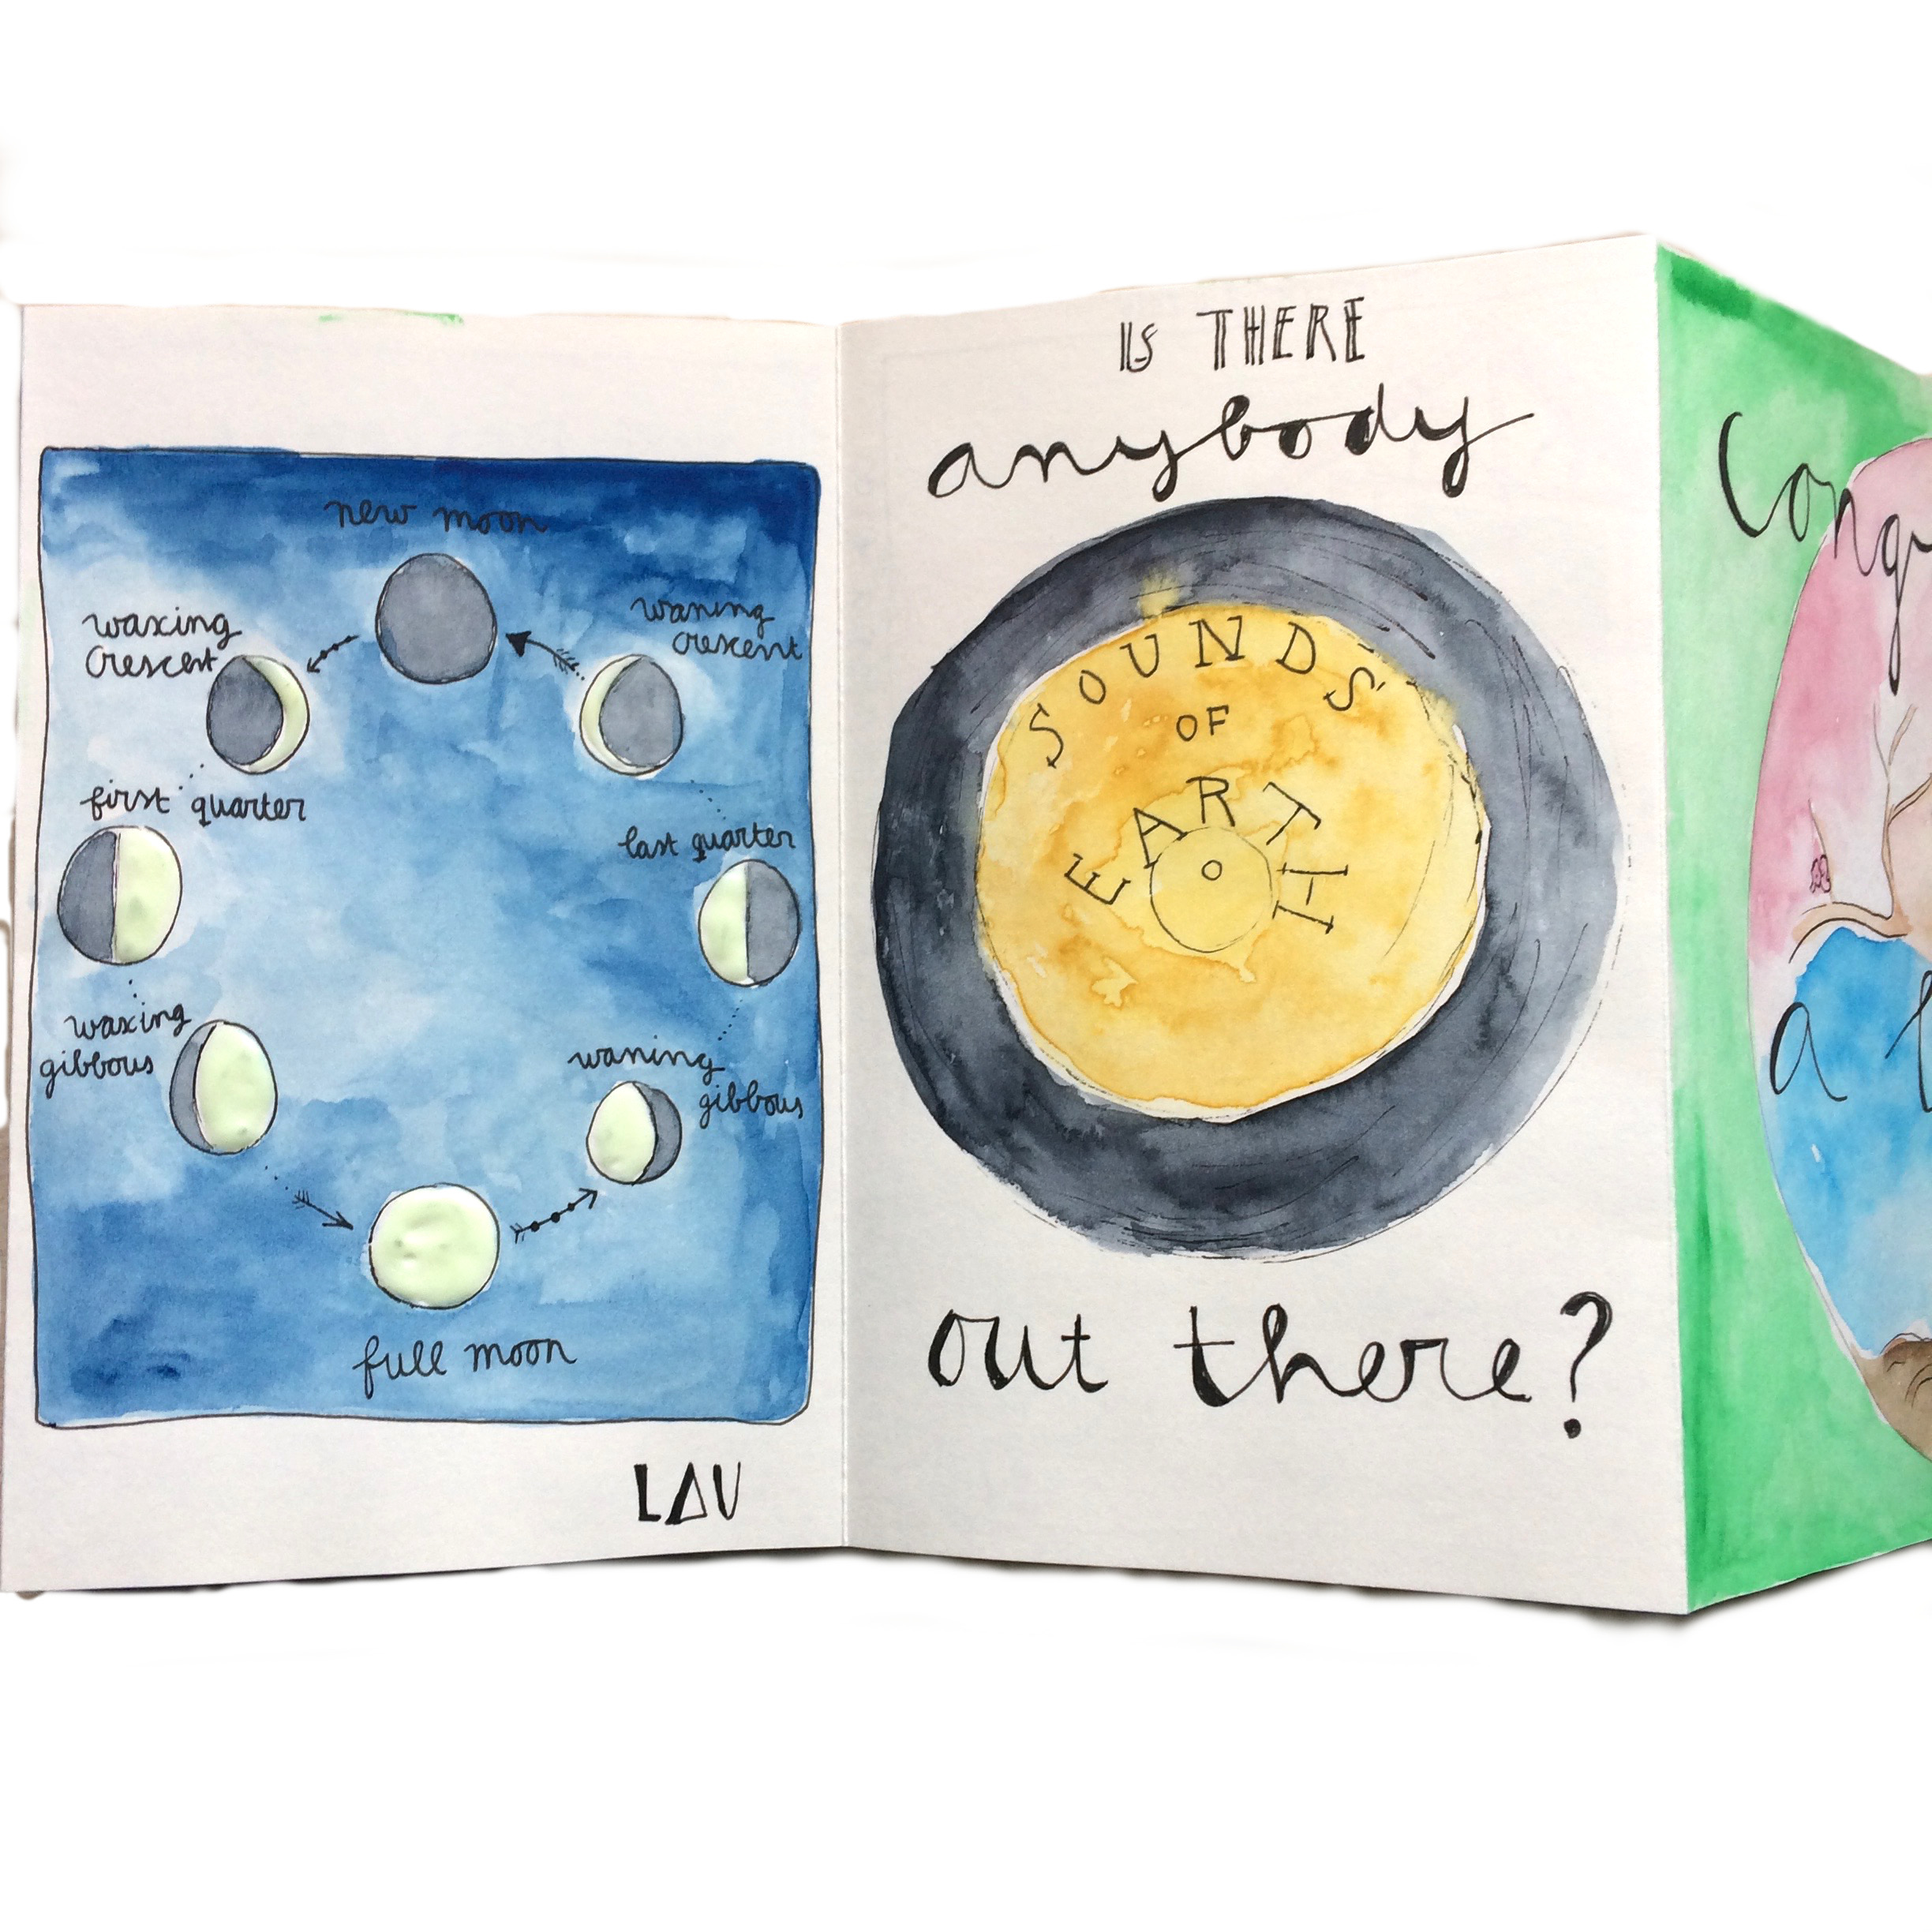 Drawing from the mini book ´a tiny universe´